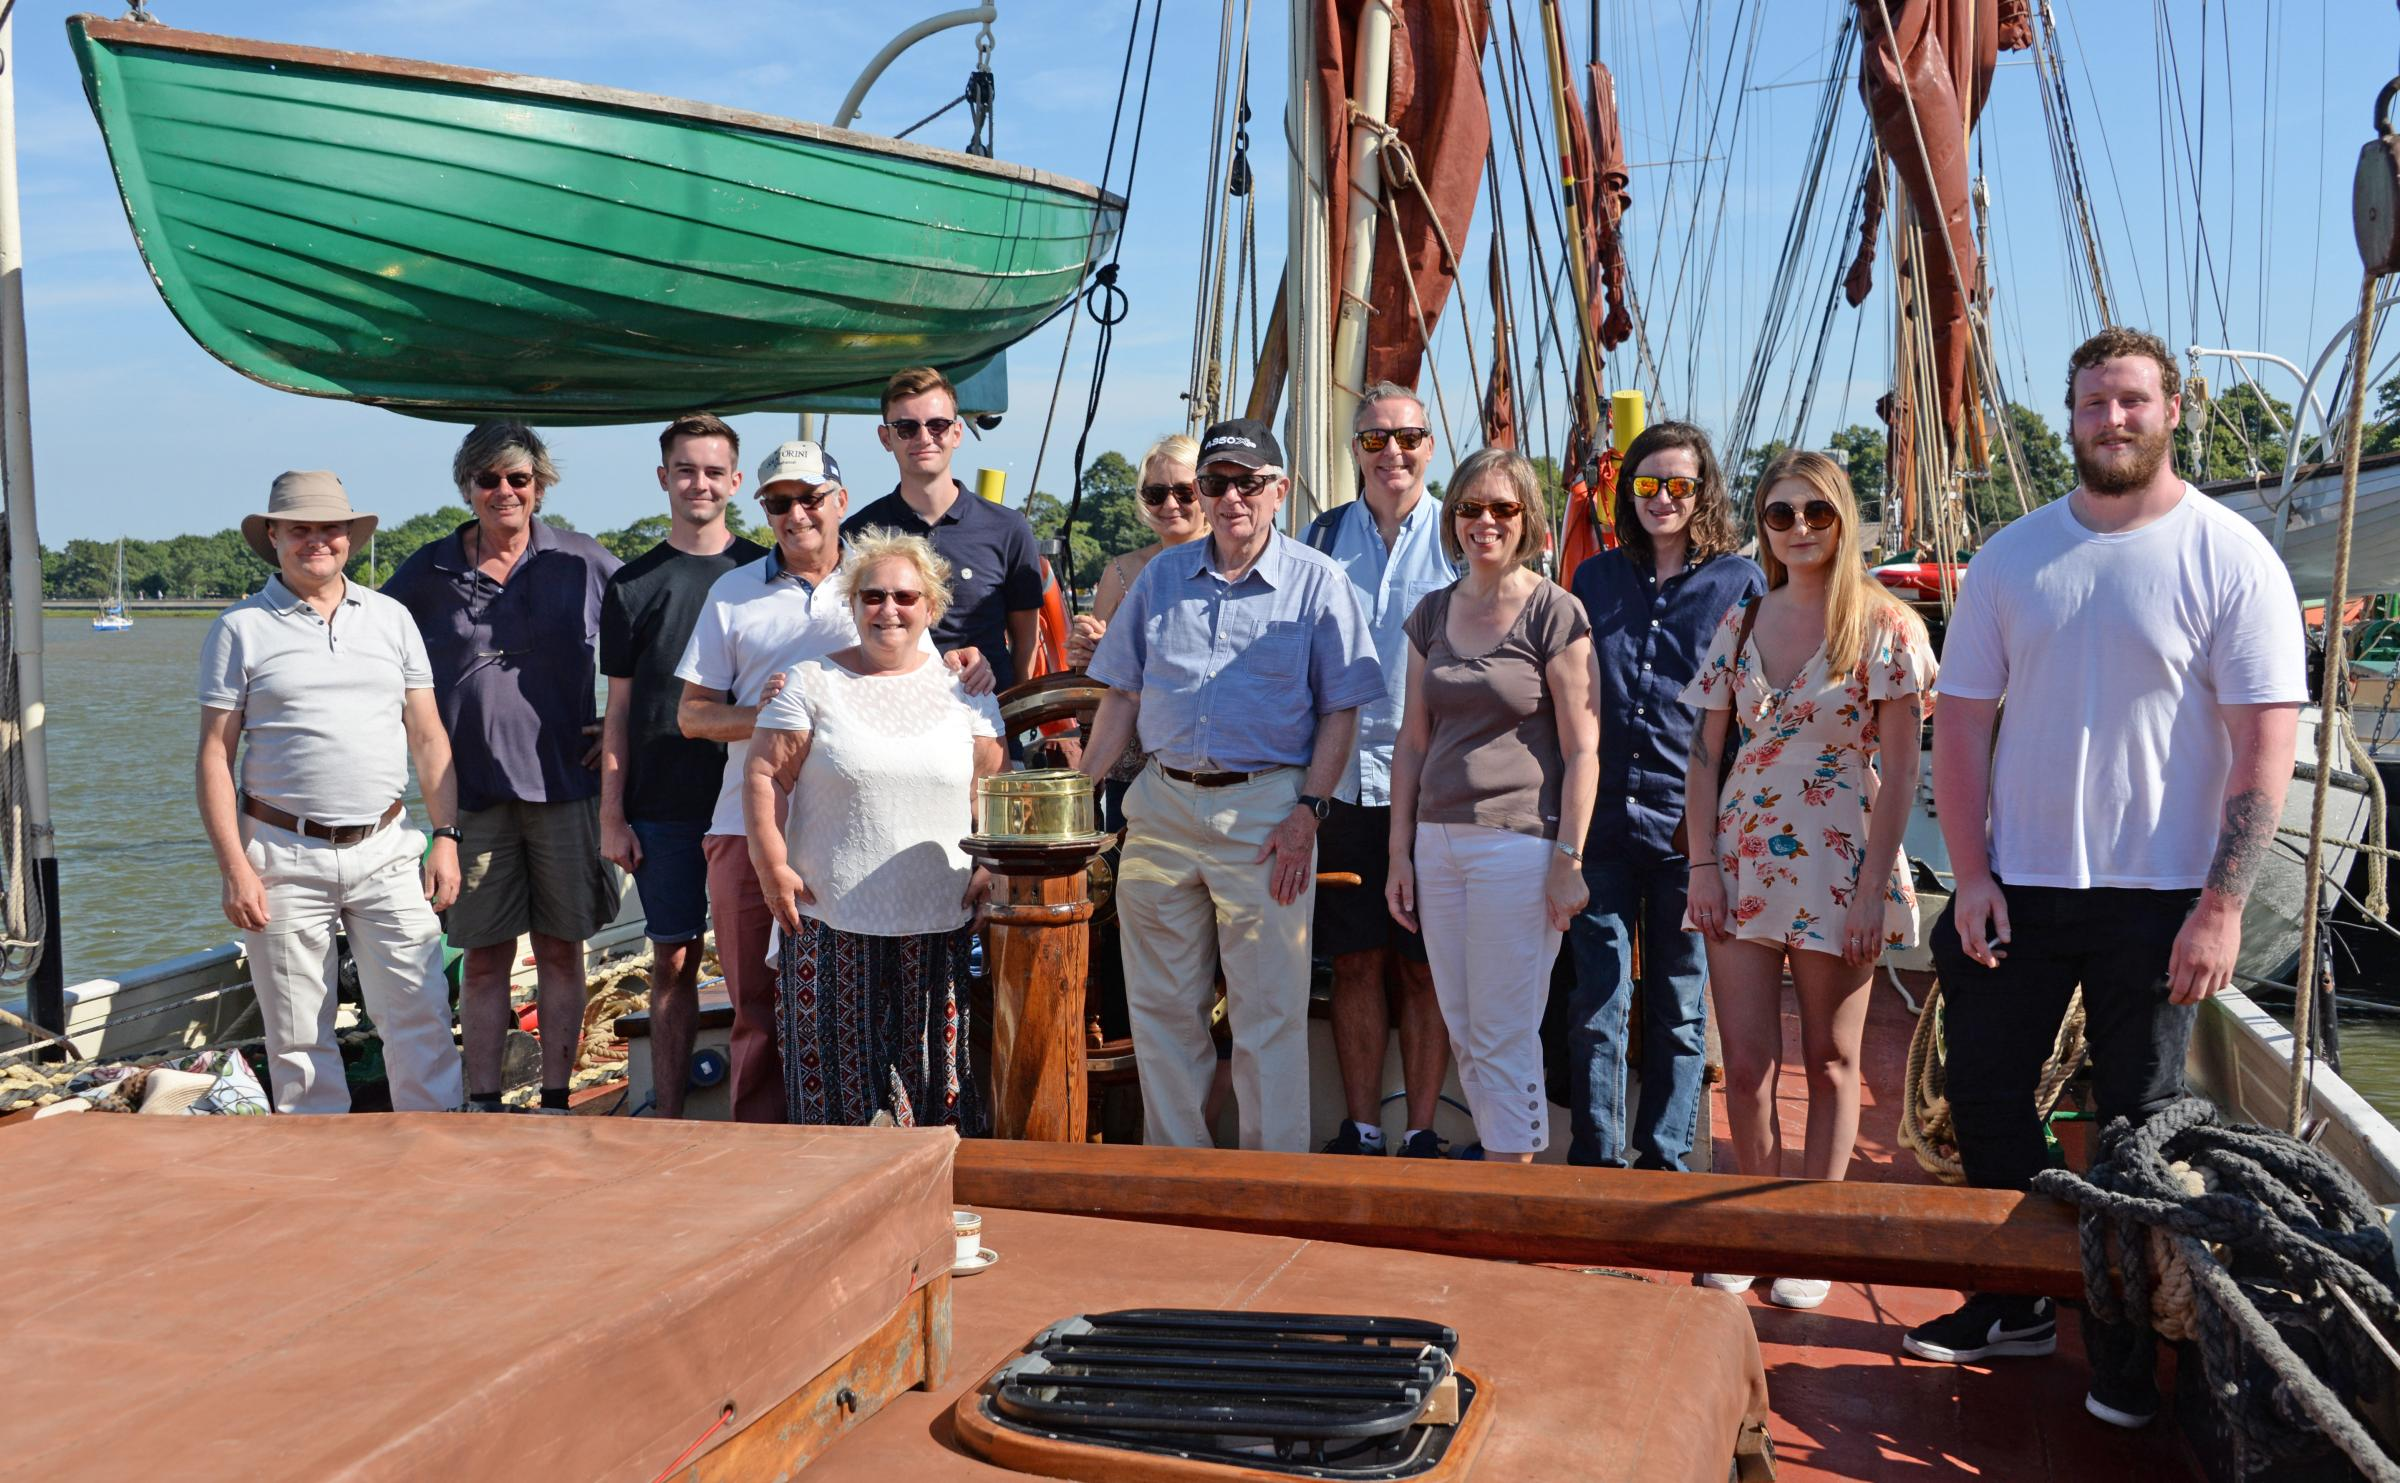 Atlantic Micowave staff were treated to a trip on the high seas to celebrate record sales